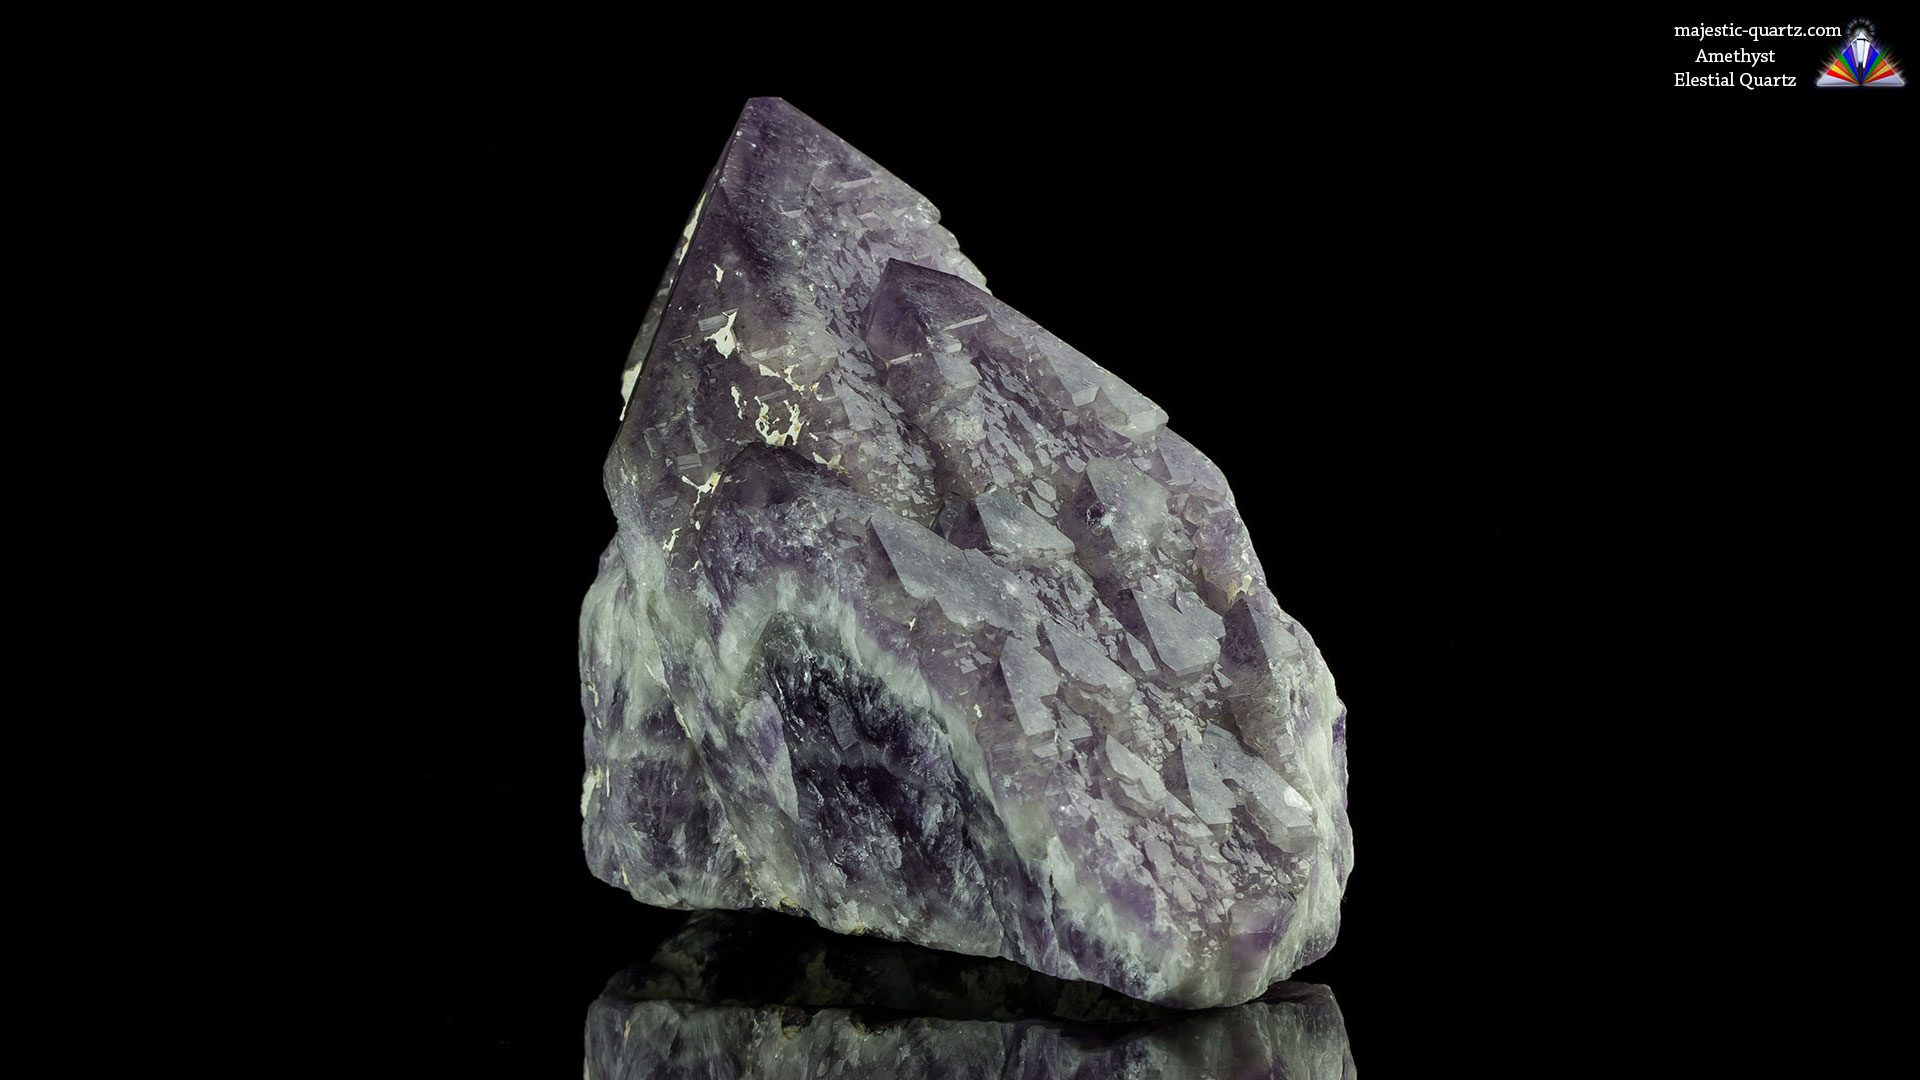 Amethyst Elestial Quartz Crystal - Photograph by Anthony Bradford